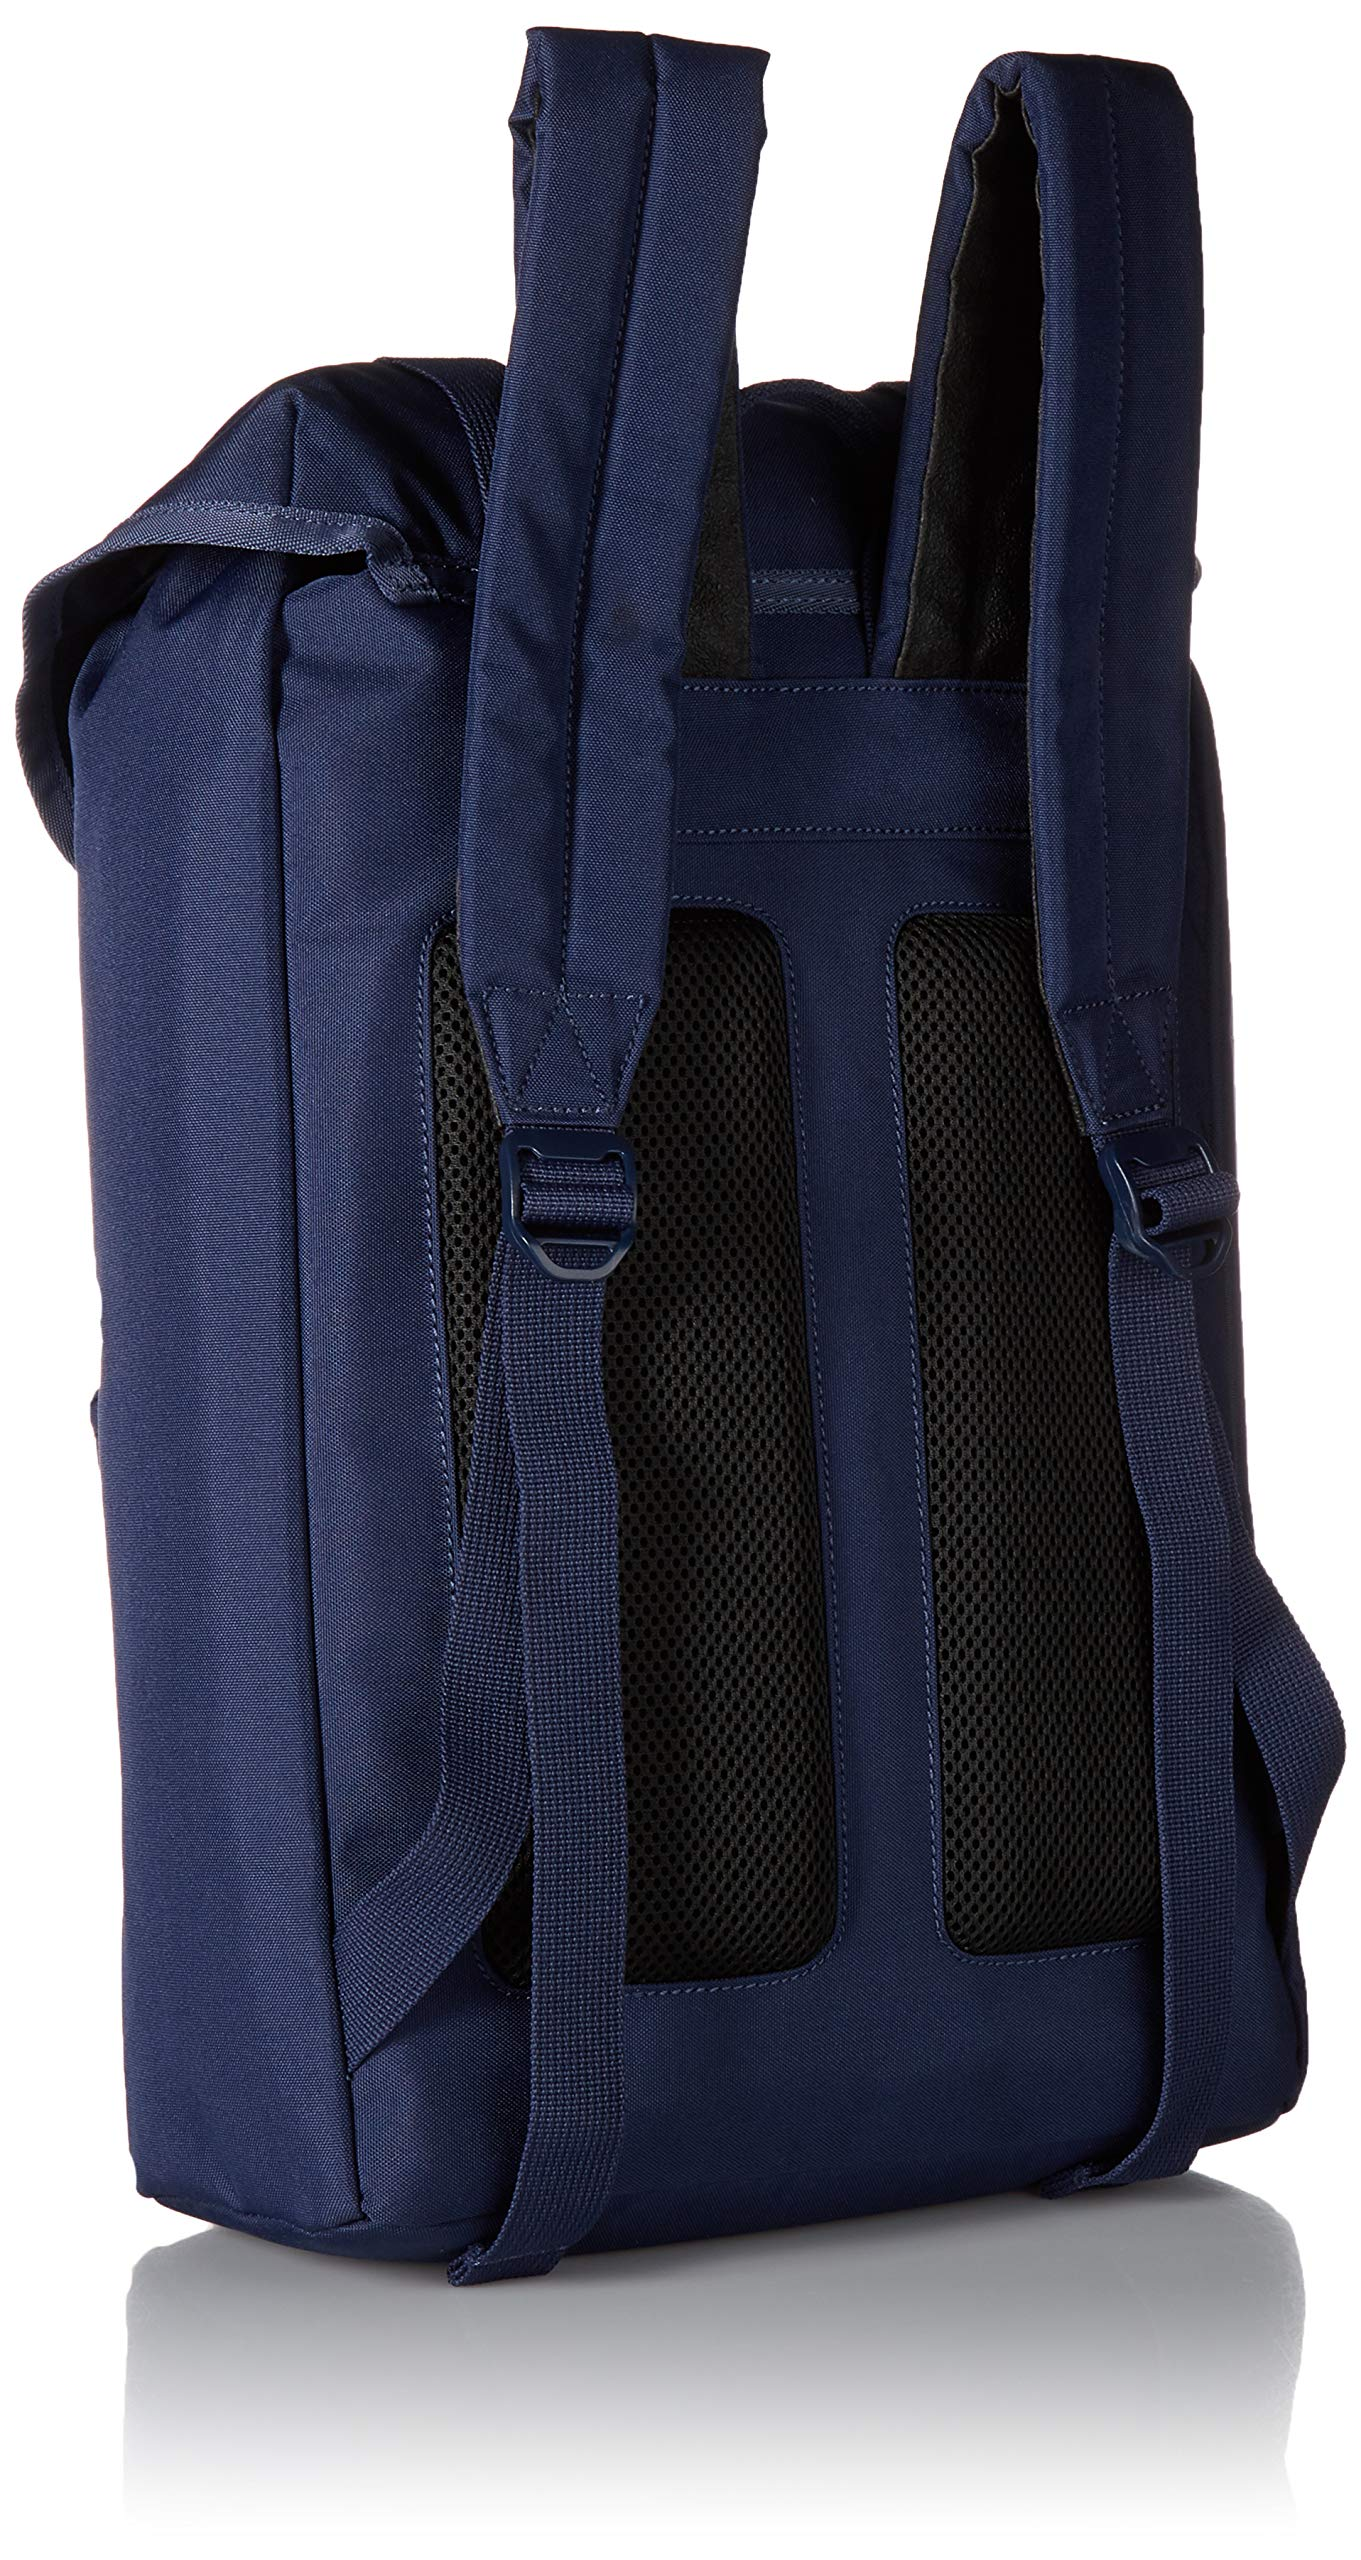 Lacoste Men's Neocroc Flap Backpack, Peacoat, 00 by Lacoste (Image #2)